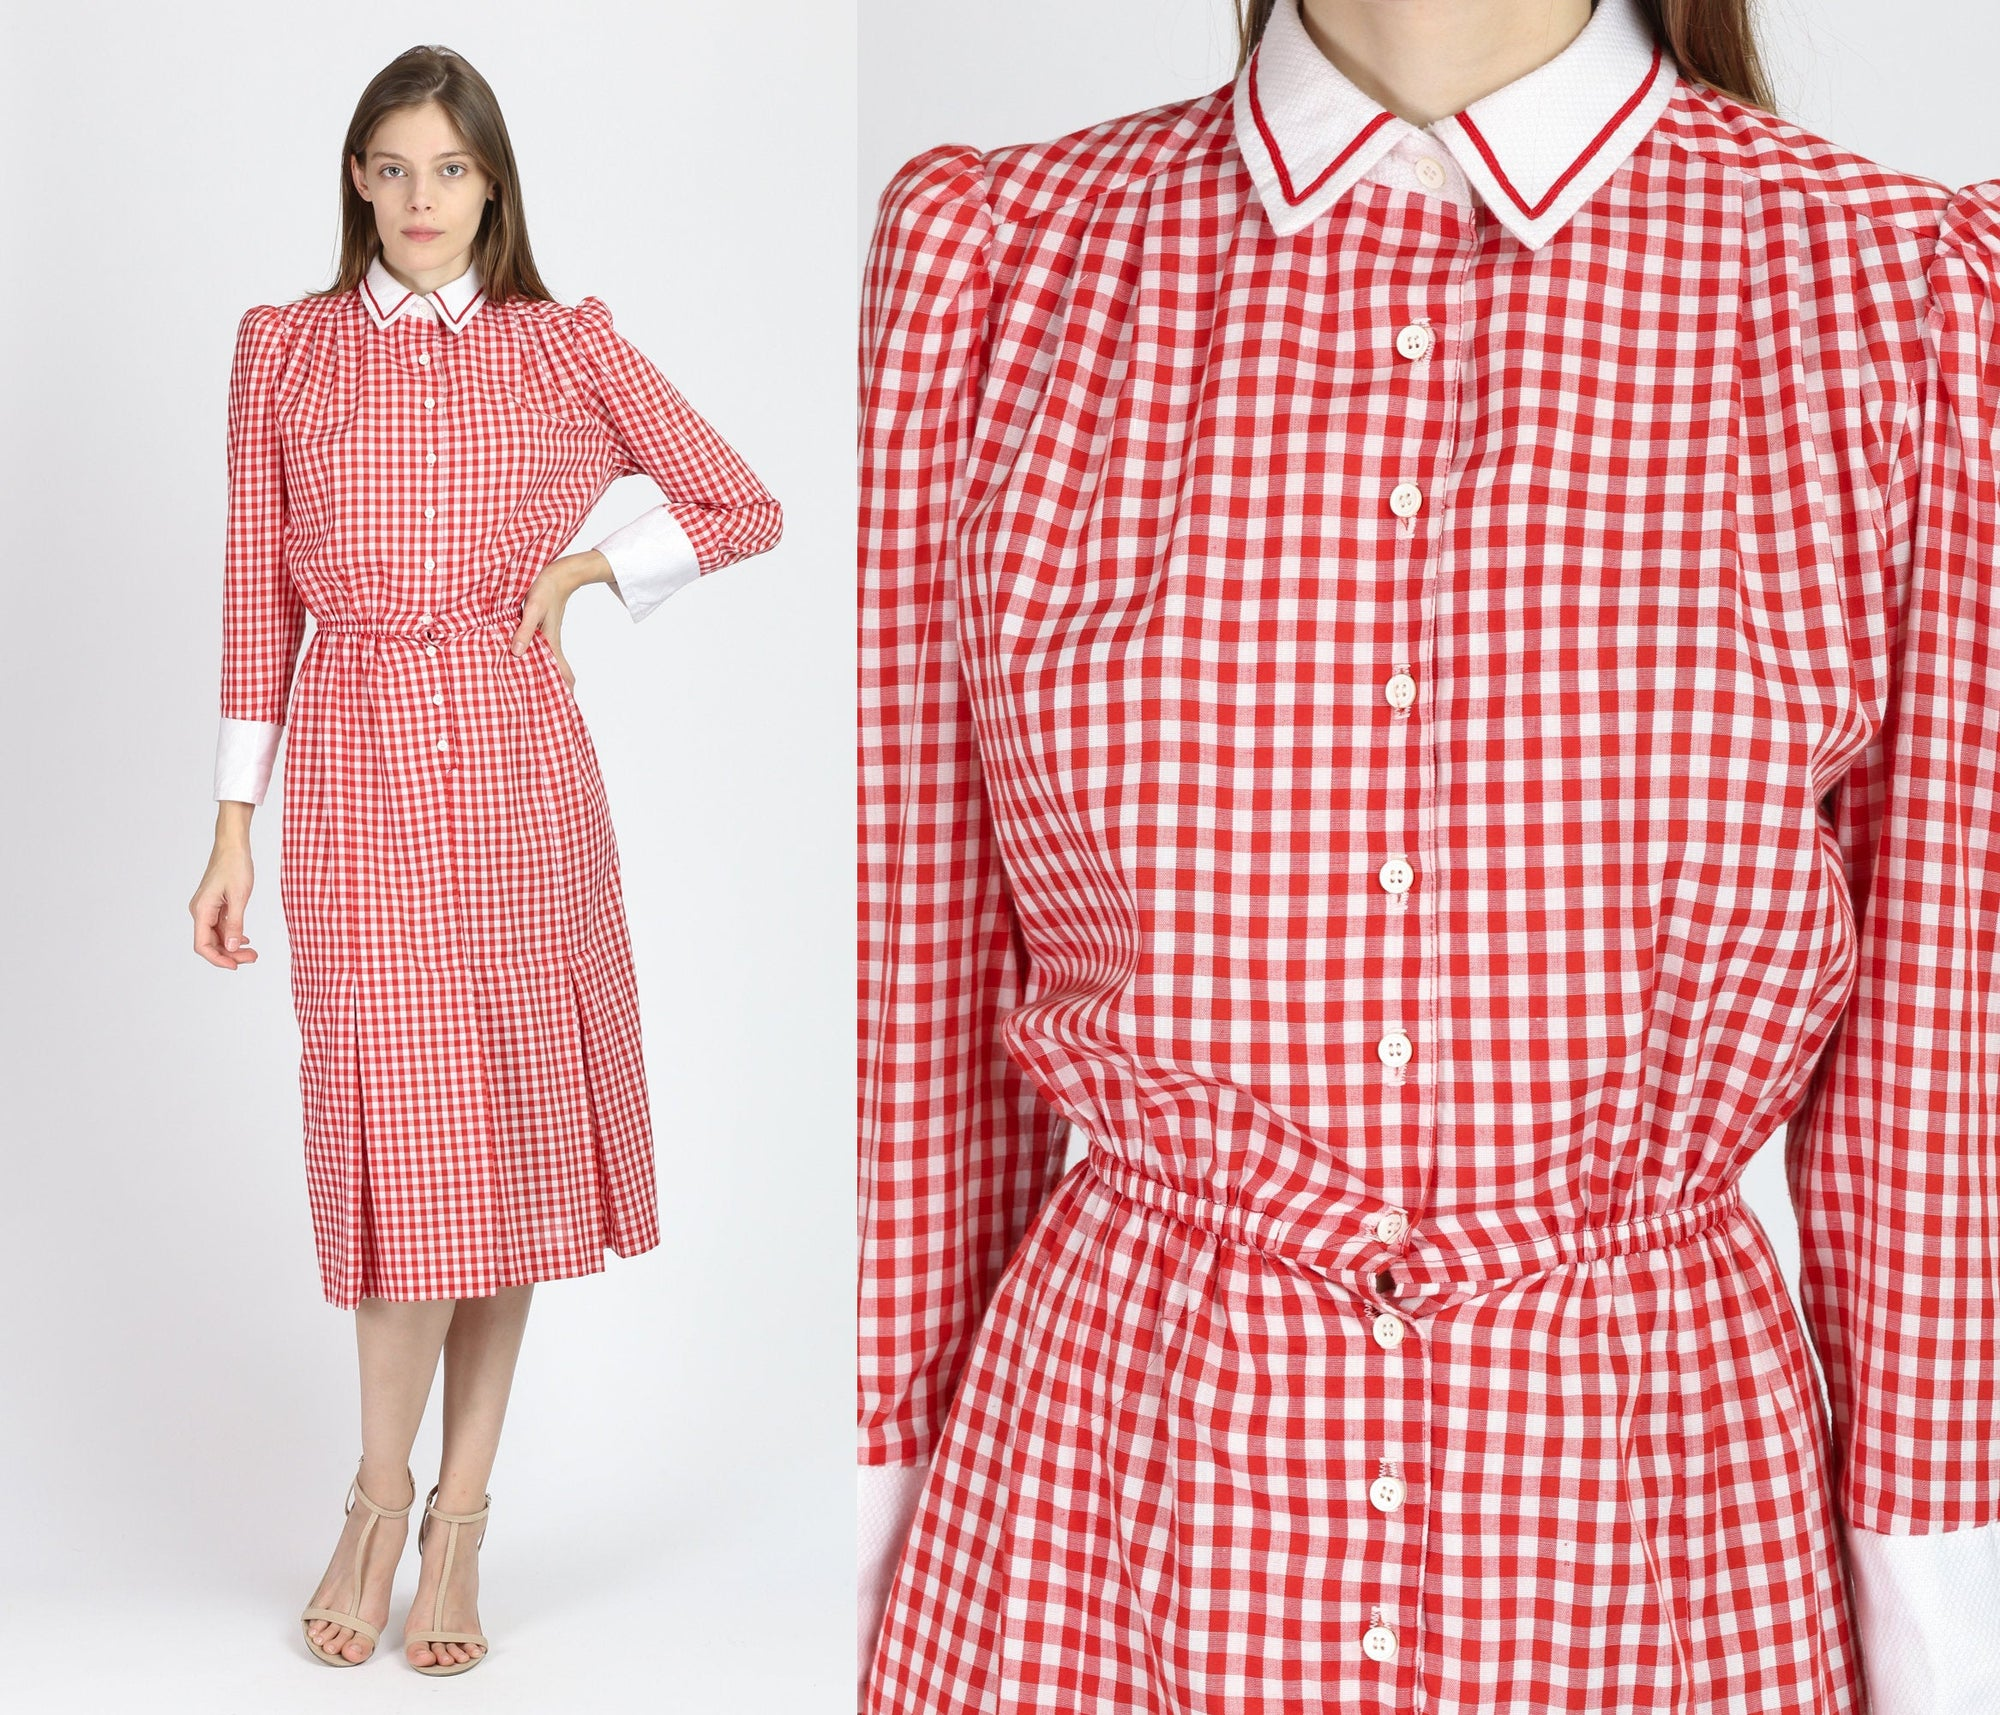 80s Red & White Gingham Dress - Extra Small